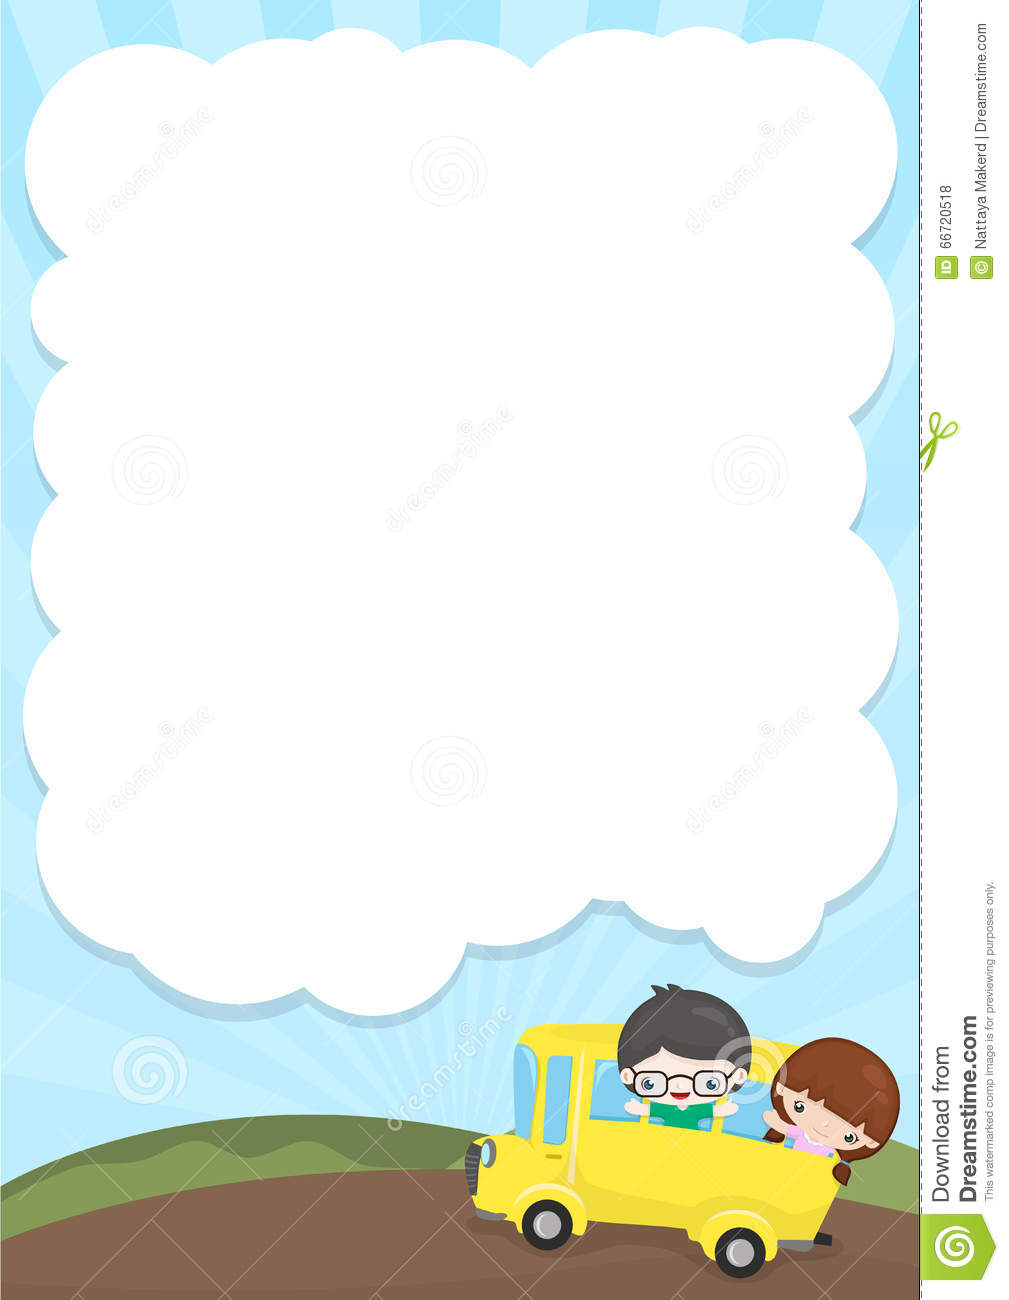 Vertical Frame With School And Kids Illustration 66720518 - Megapixl